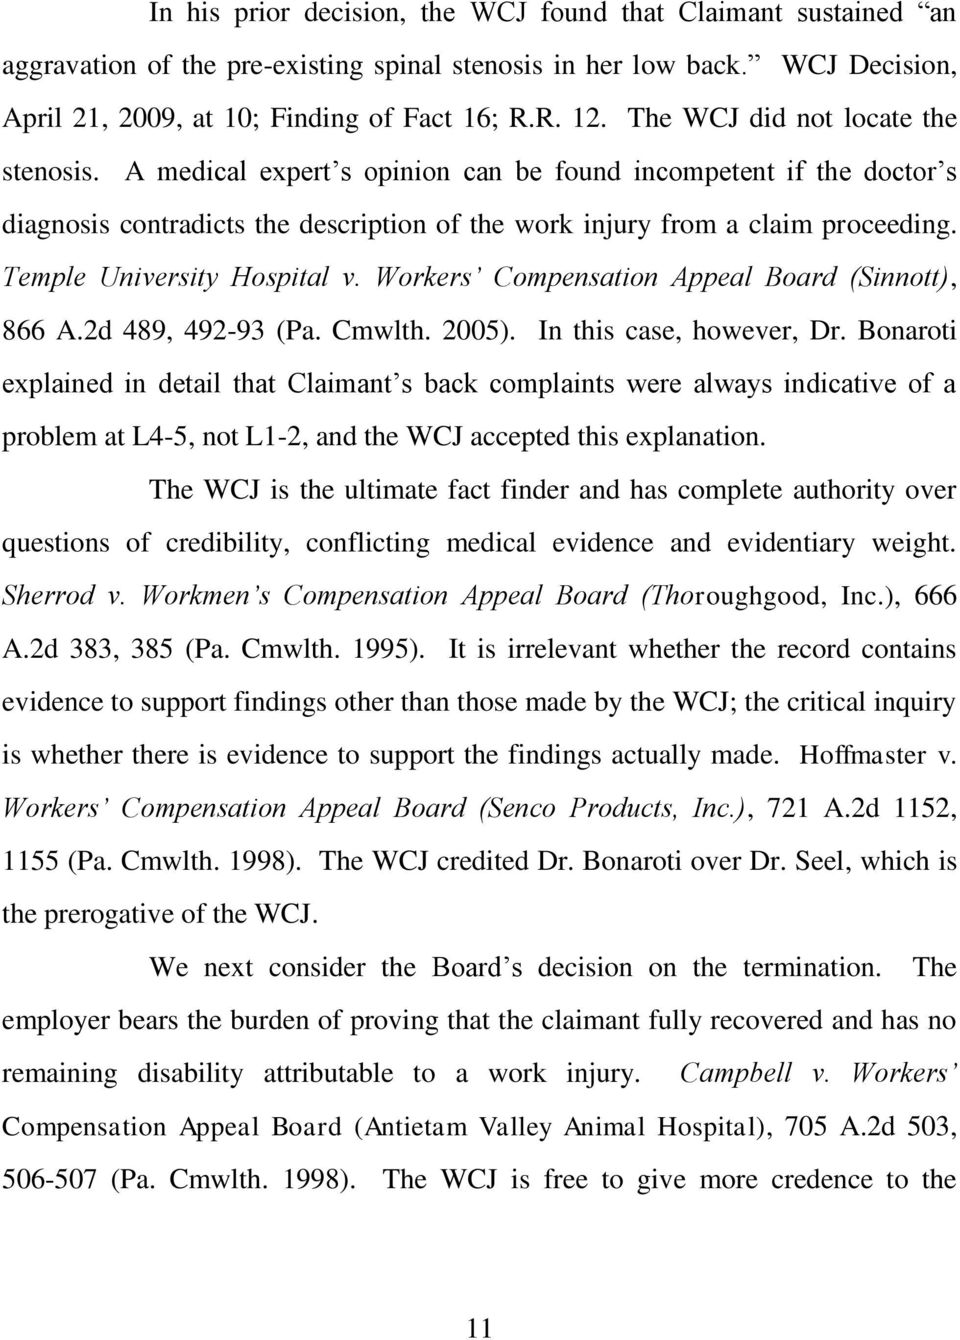 Temple University Hospital v. Workers Compensation Appeal Board (Sinnott), 866 A.2d 489, 492-93 (Pa. Cmwlth. 2005). In this case, however, Dr.